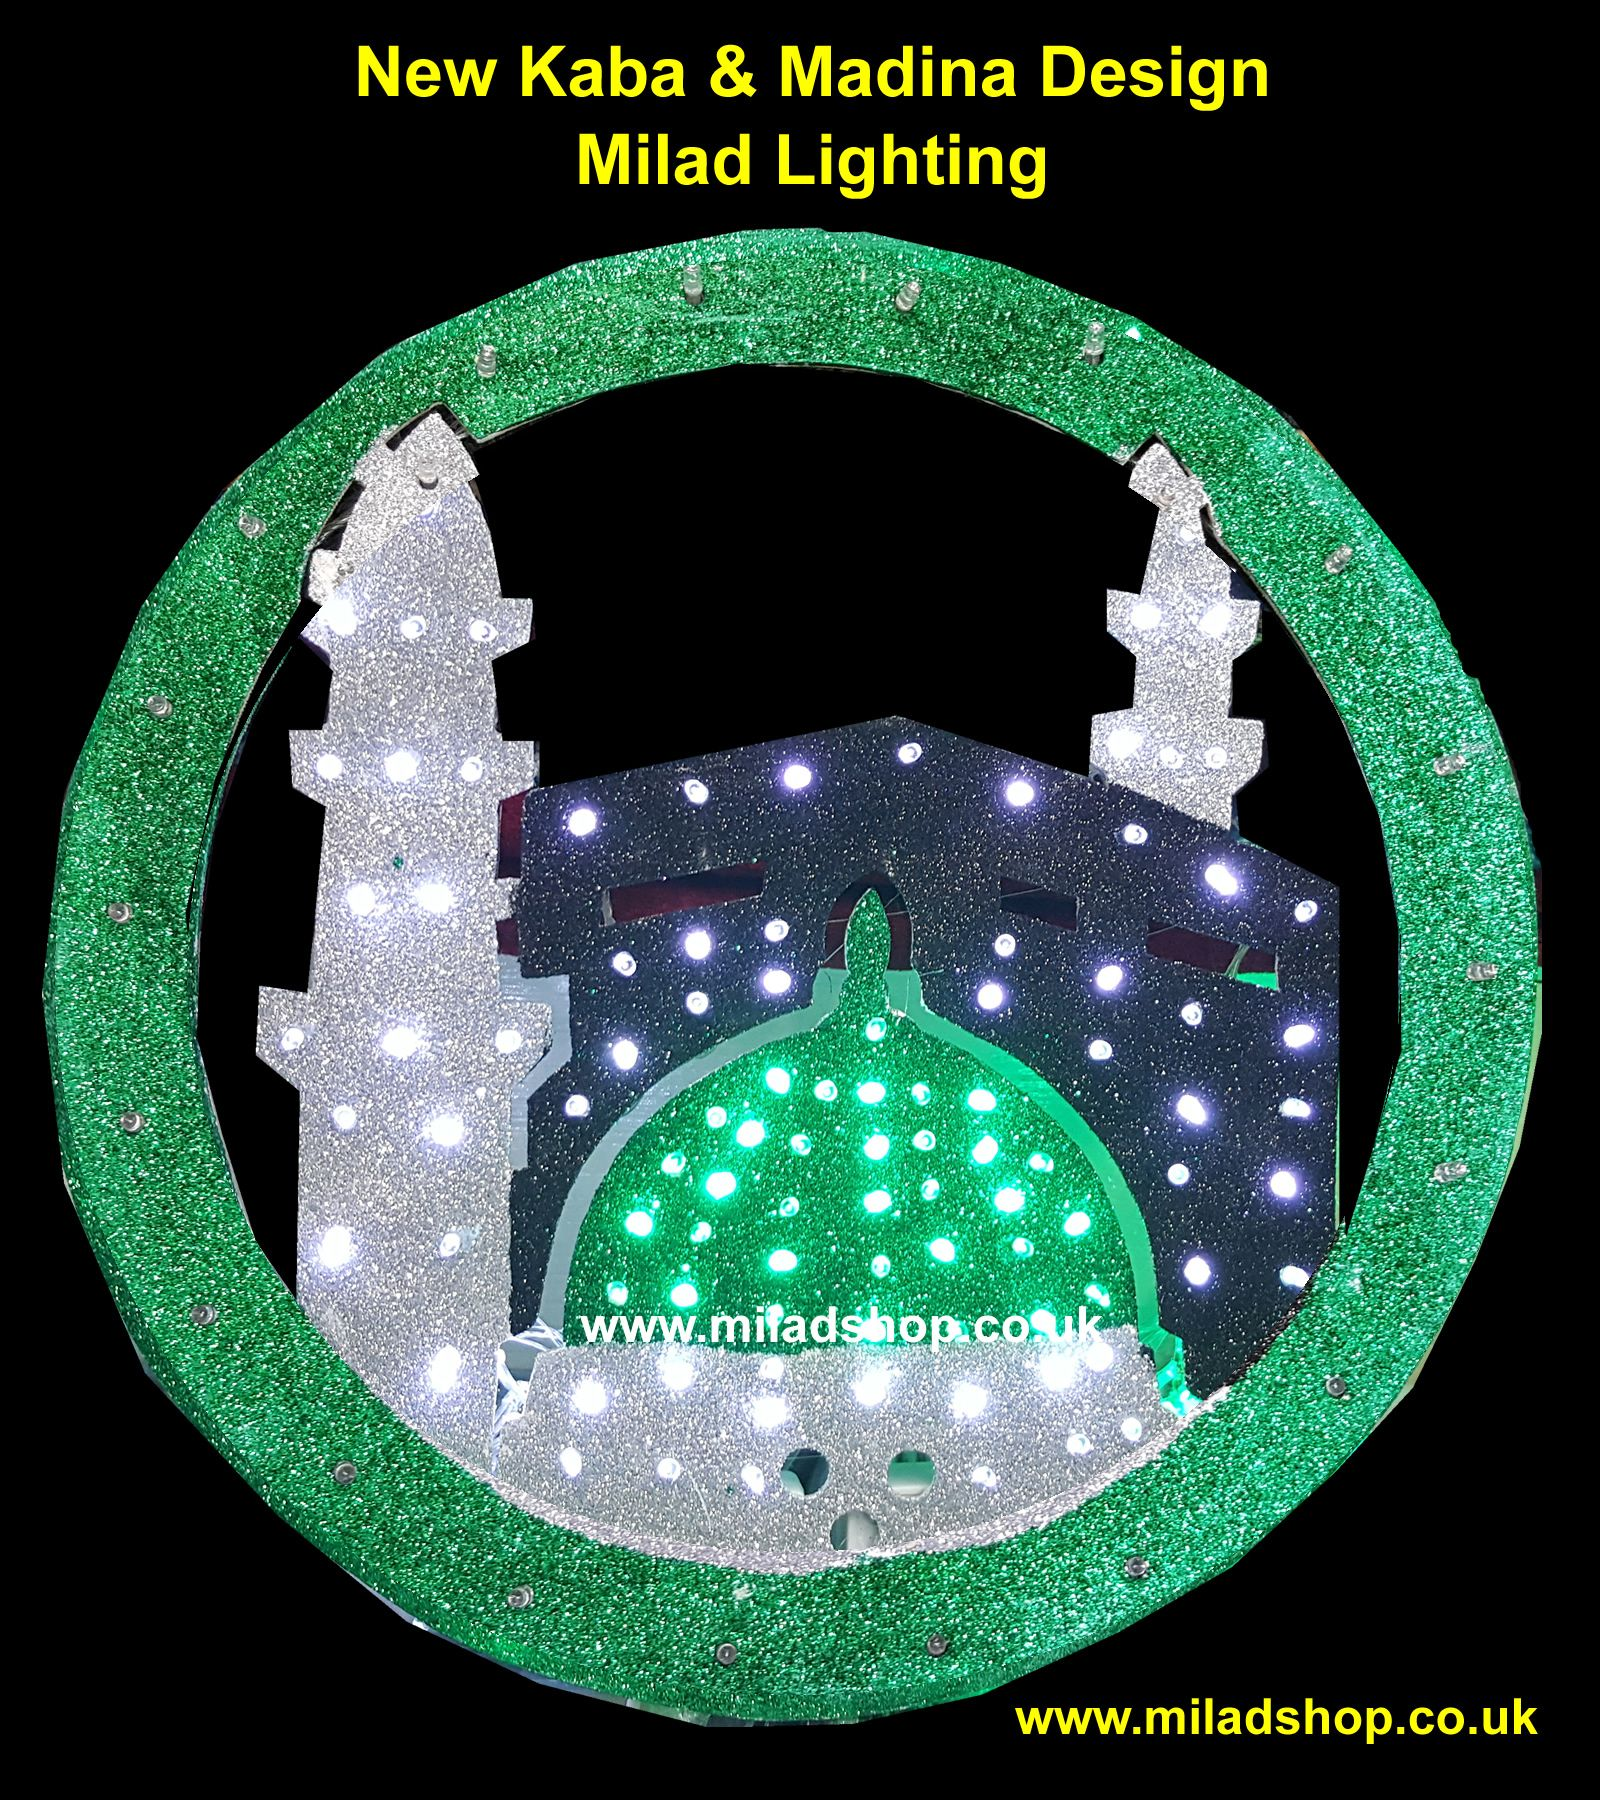 Milad circle design makkah madina multifunctional milaad for Decoration 3id milad